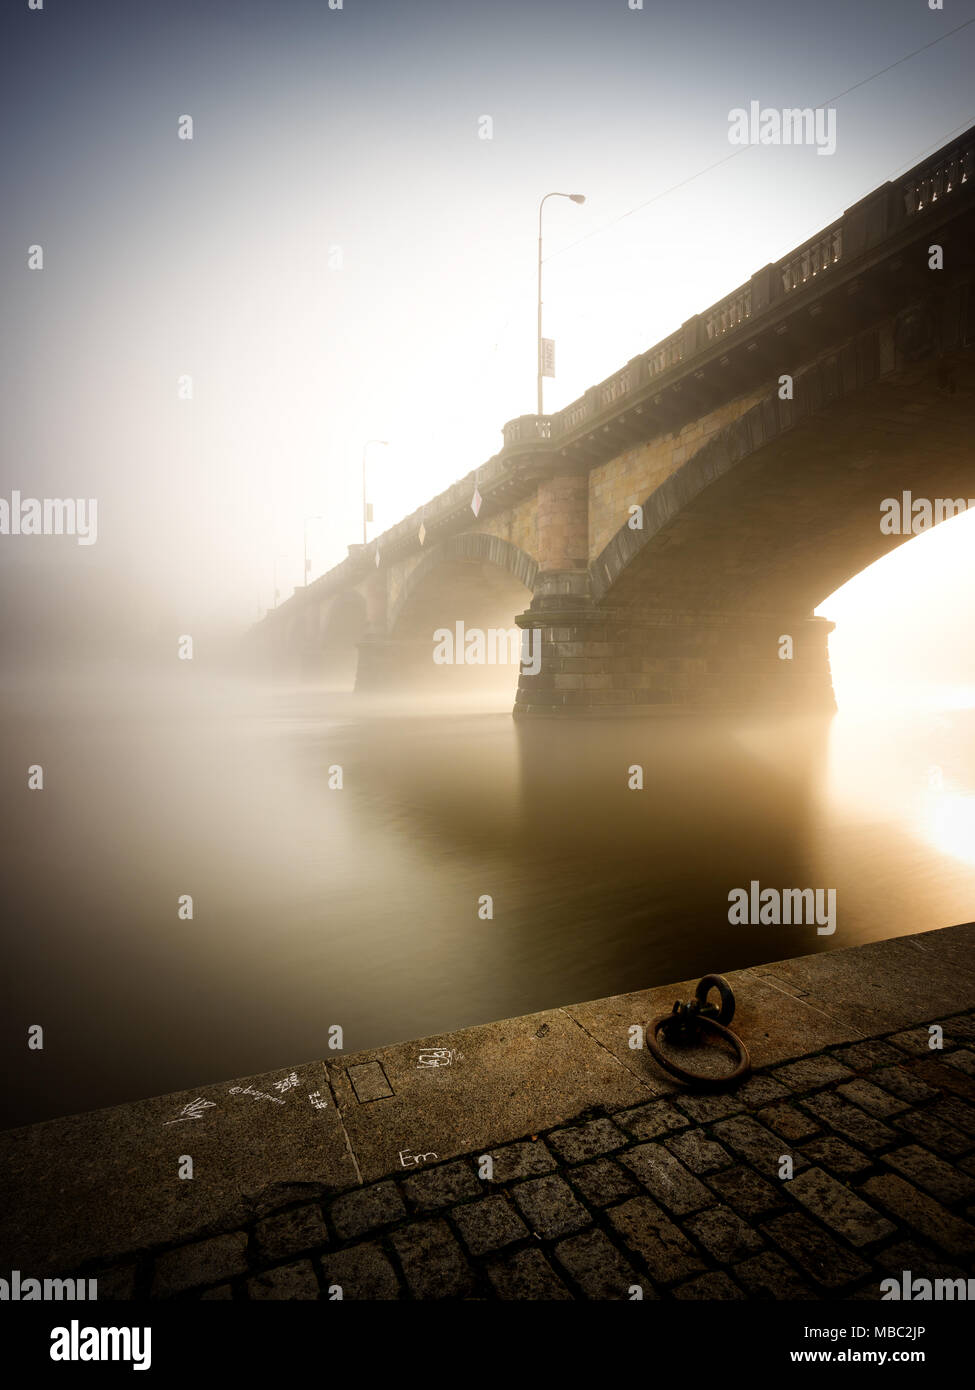 Morning view at Palacky bridge. Historical bridge over Vltava river. Foggy sunlight at riverbank. Typical autumn season. Prague, Czech republic - Stock Image